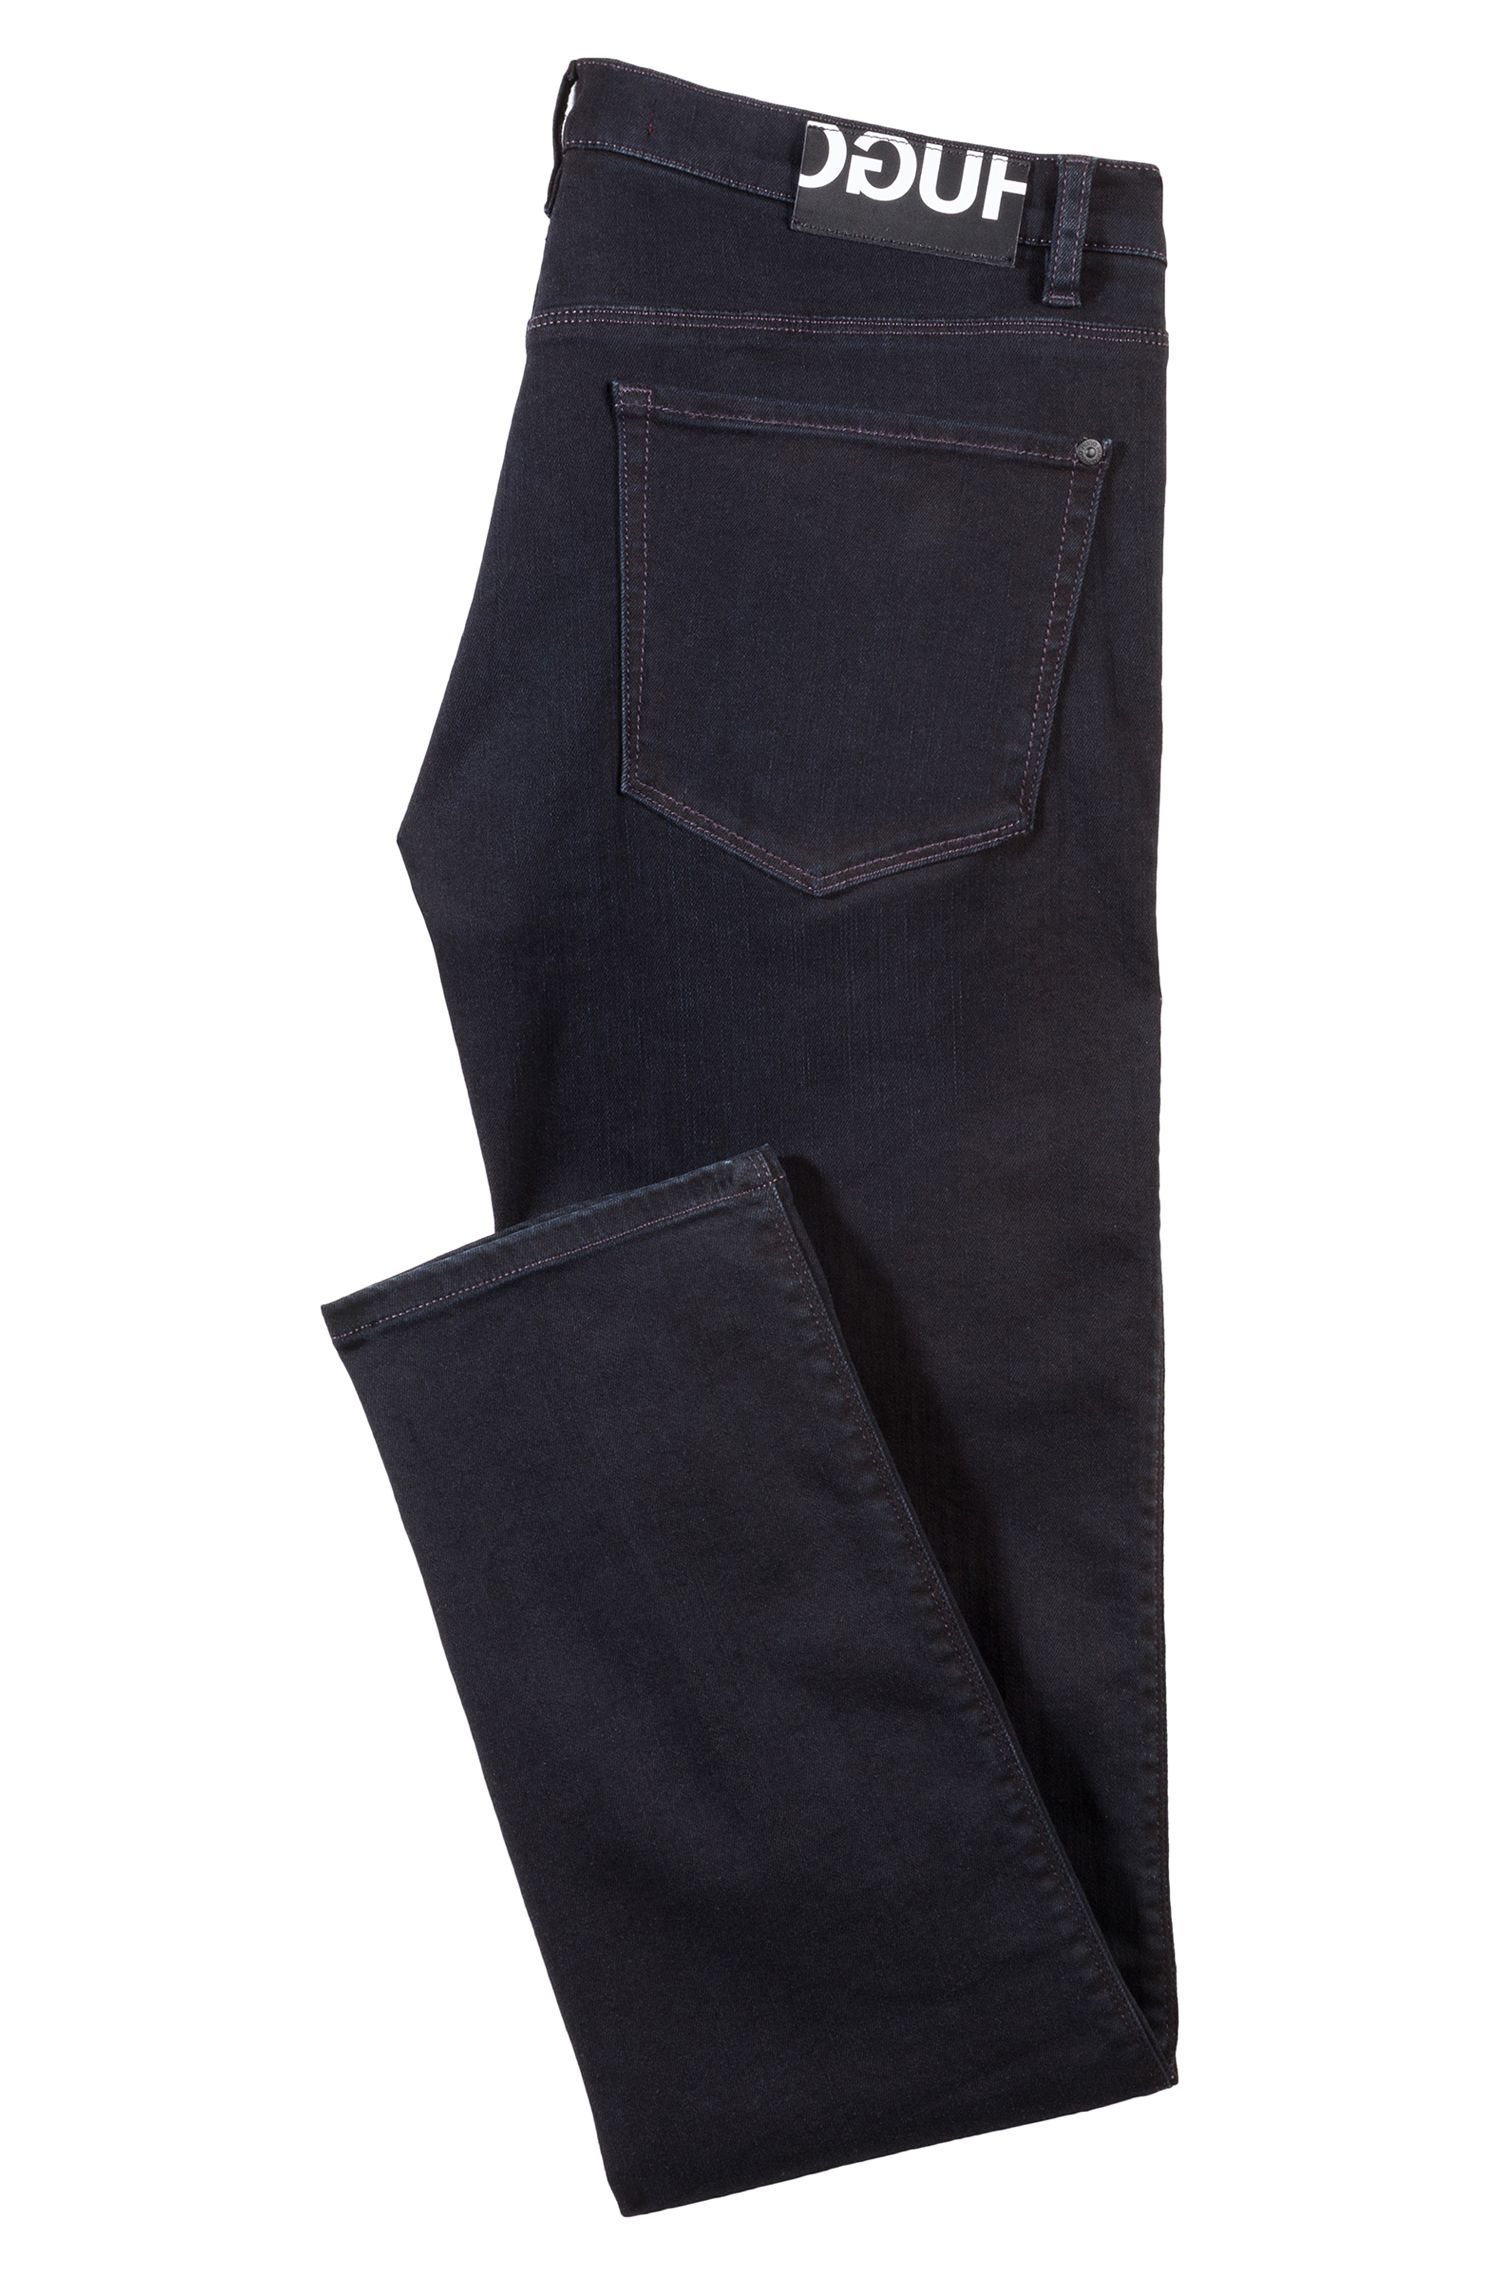 Slim-fit jeans in black stretch denim, Black